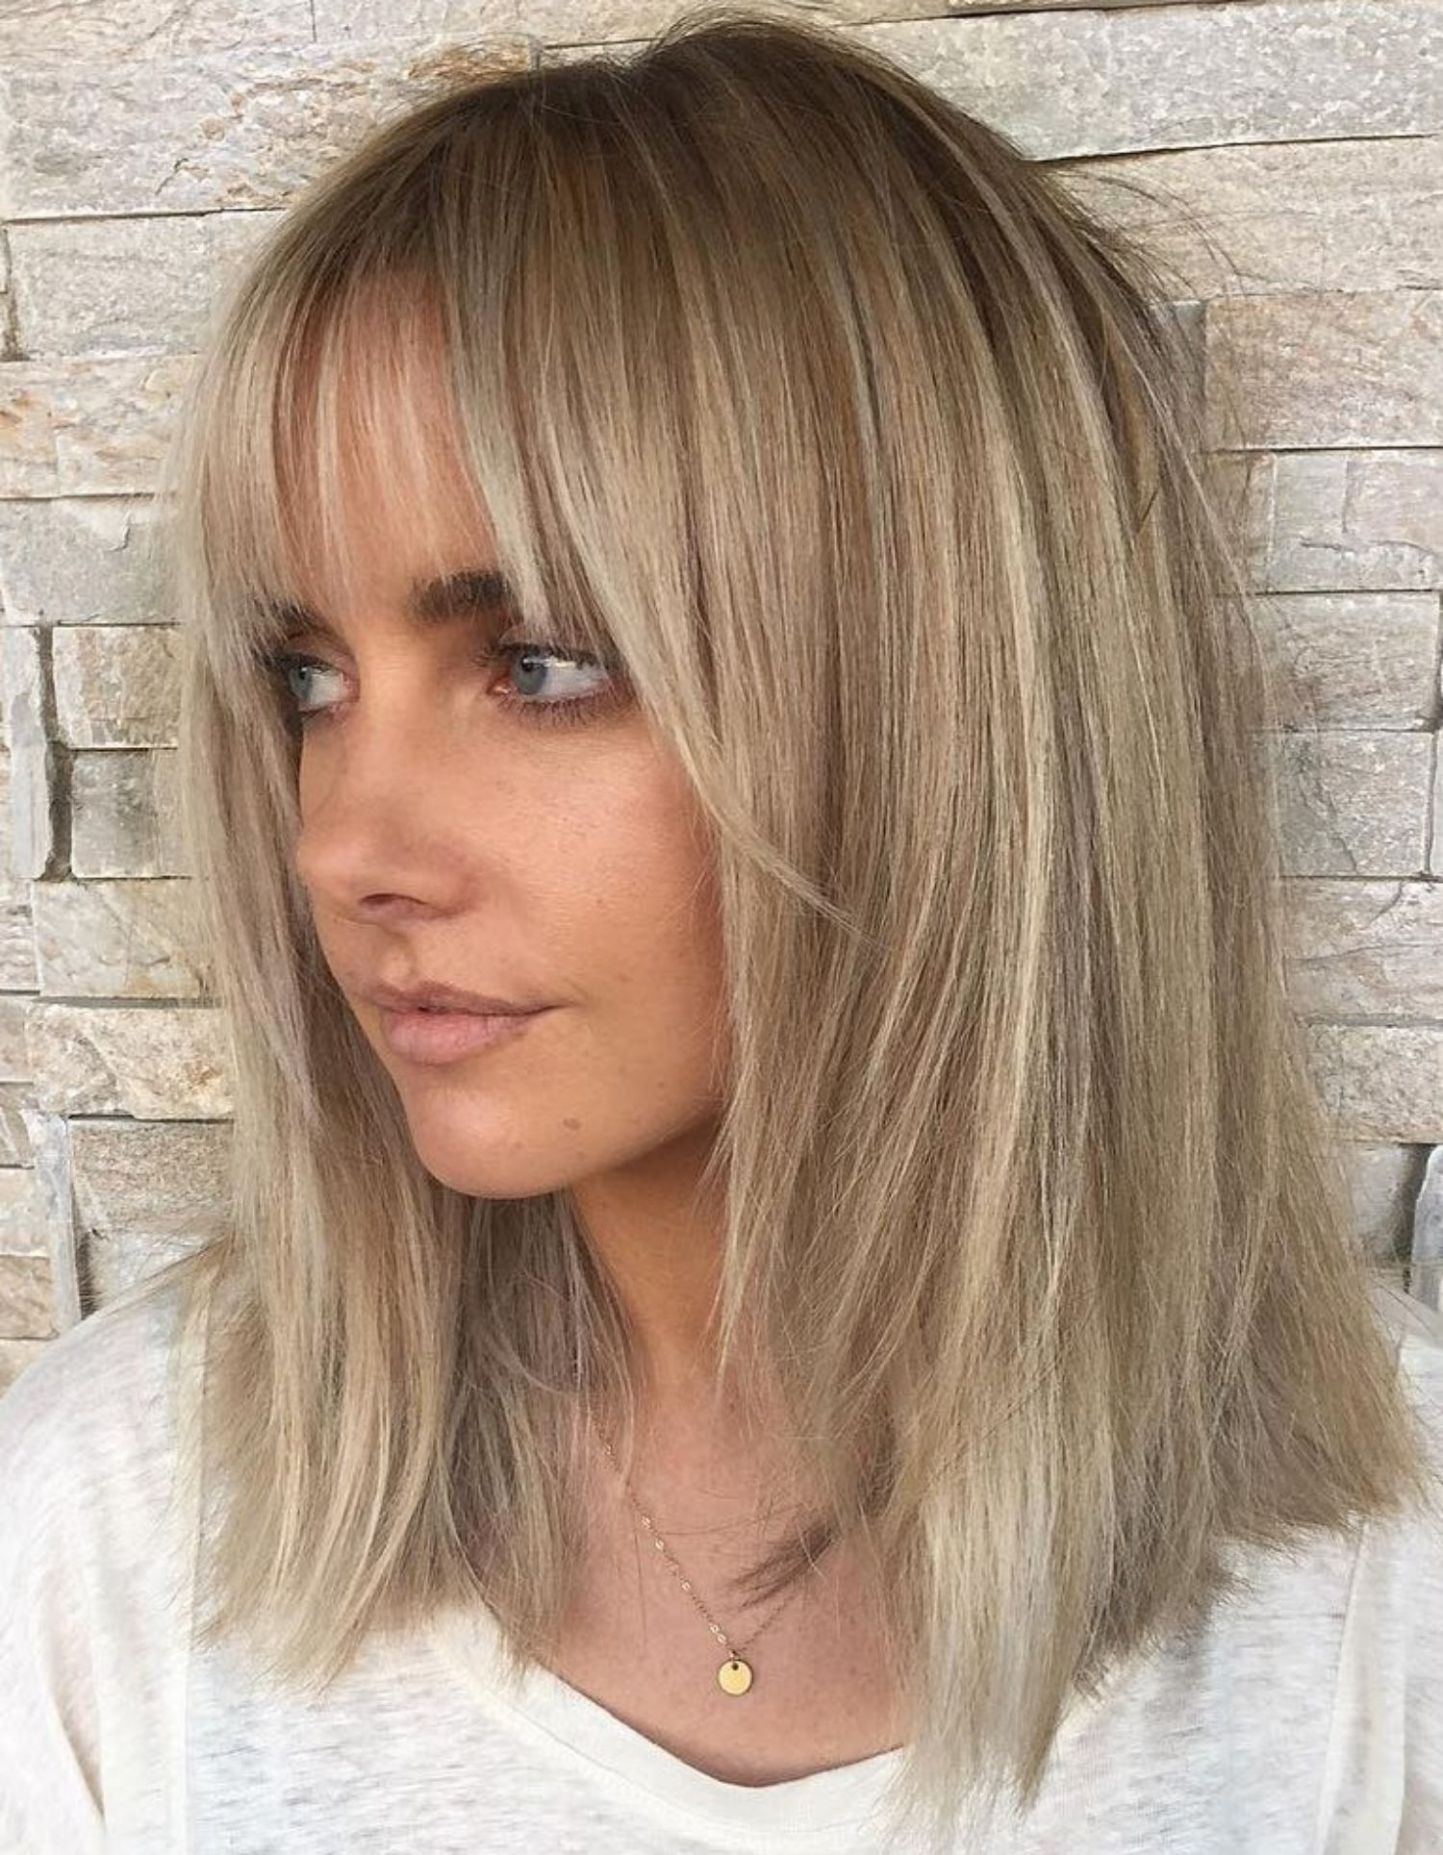 pics 27 Terrific Shoulder Length Hairstyles To Make Your Look Special